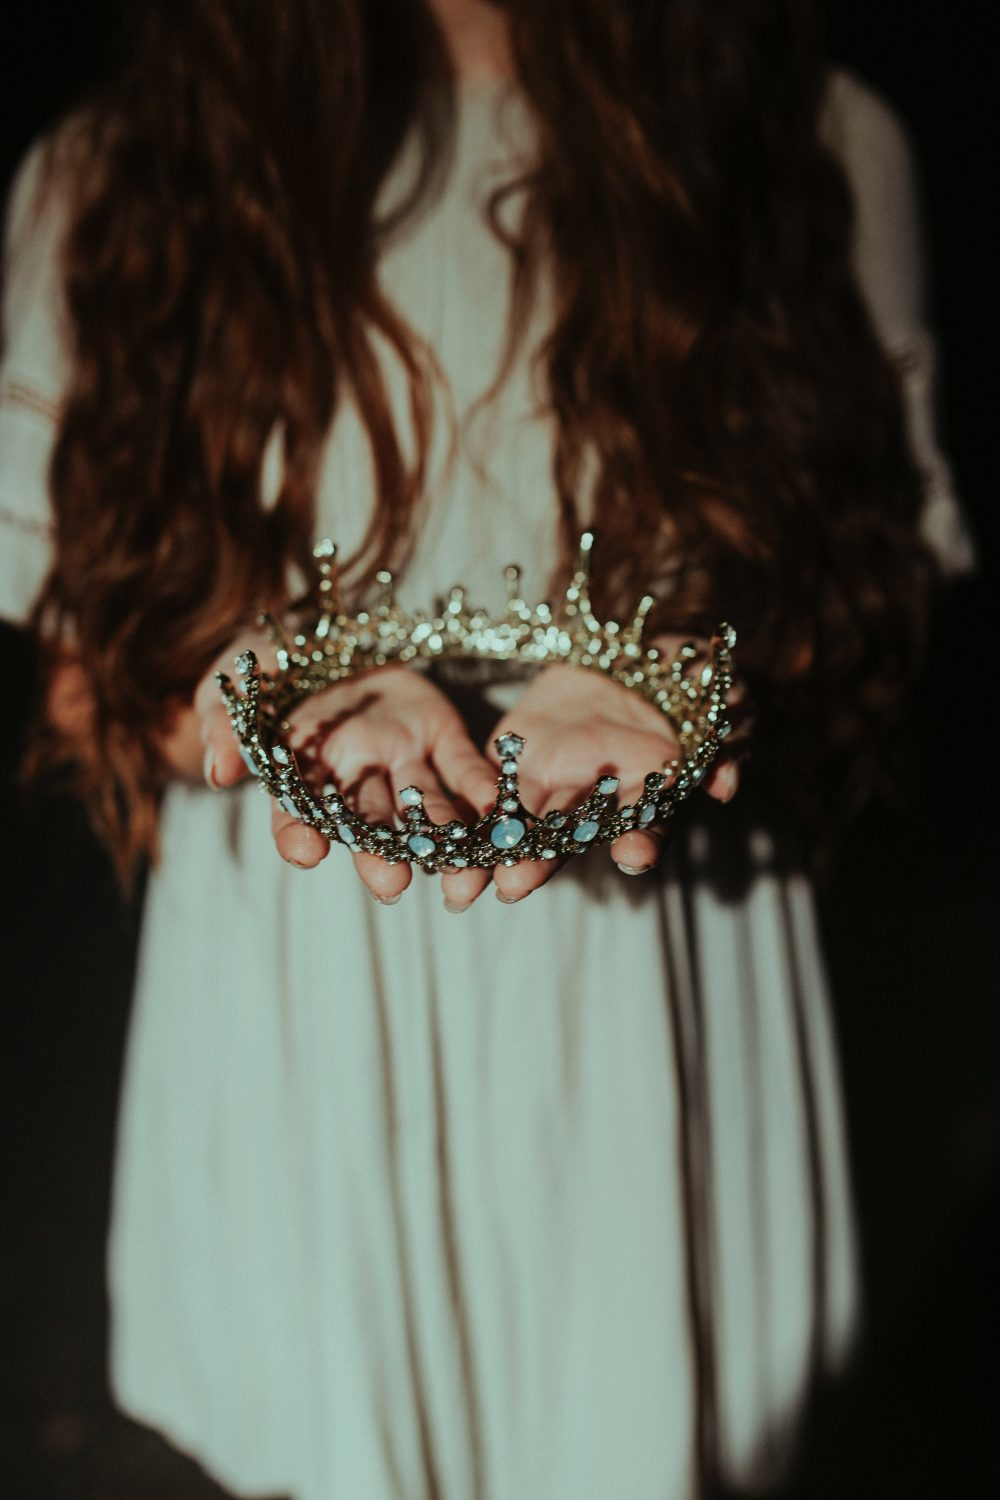 girl holding crown in article talkign about Tiara Syndrome